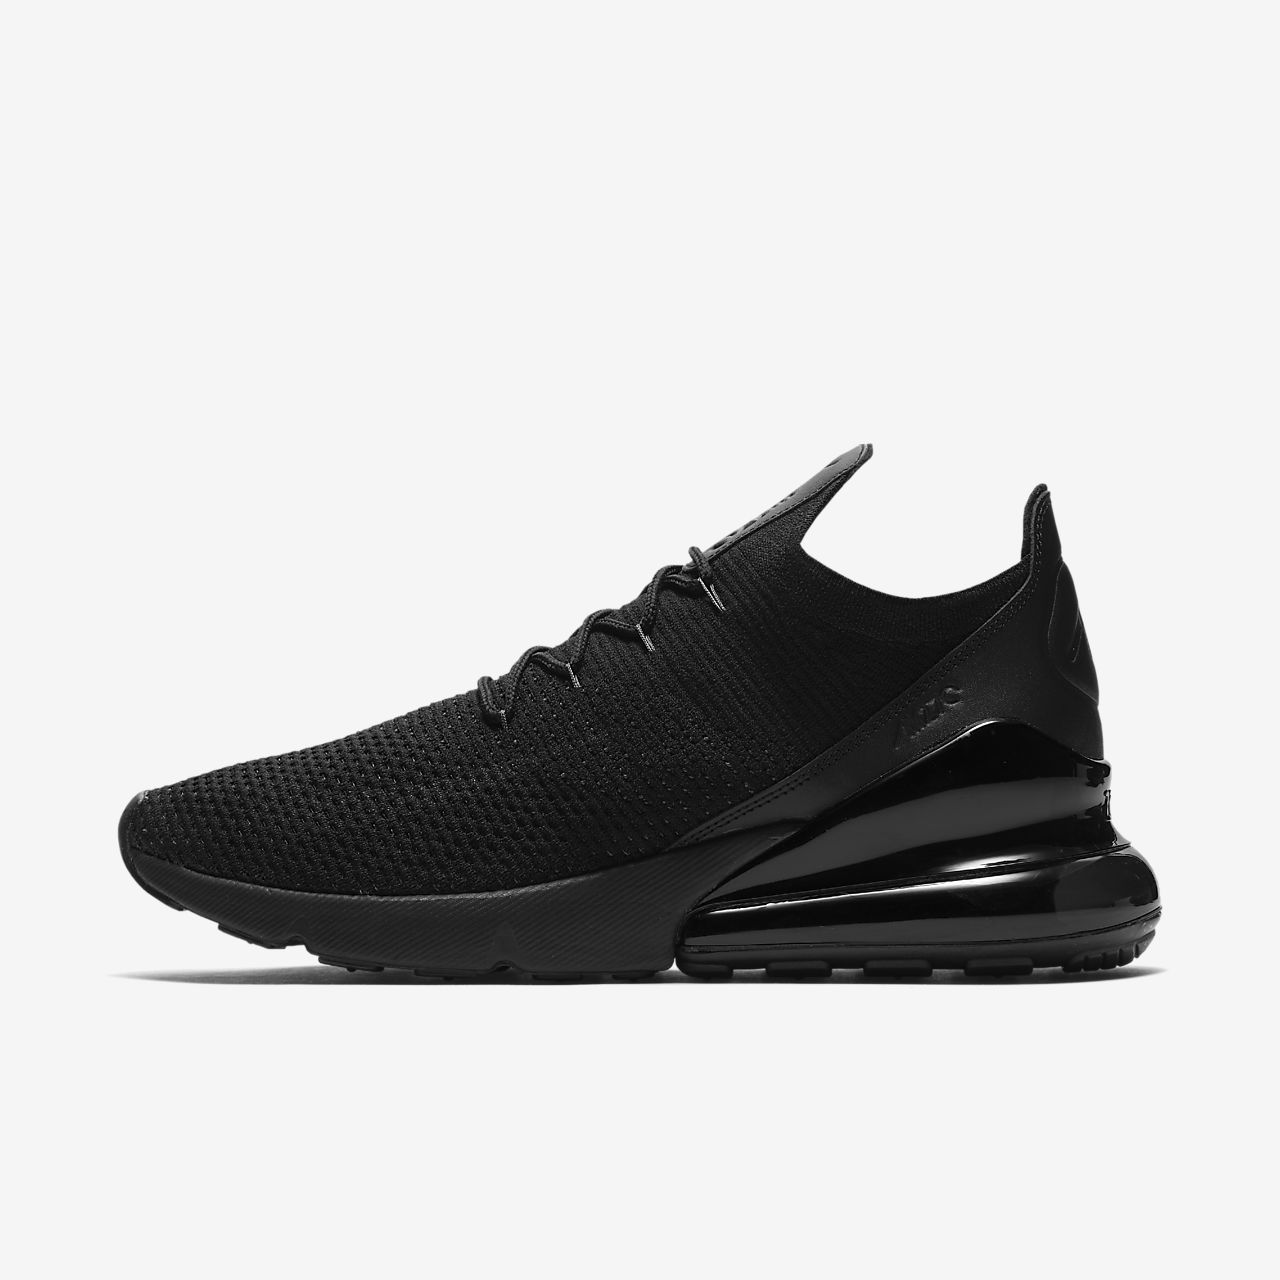 Nike Air Max 270 Flyknit Men's Casual Shoes